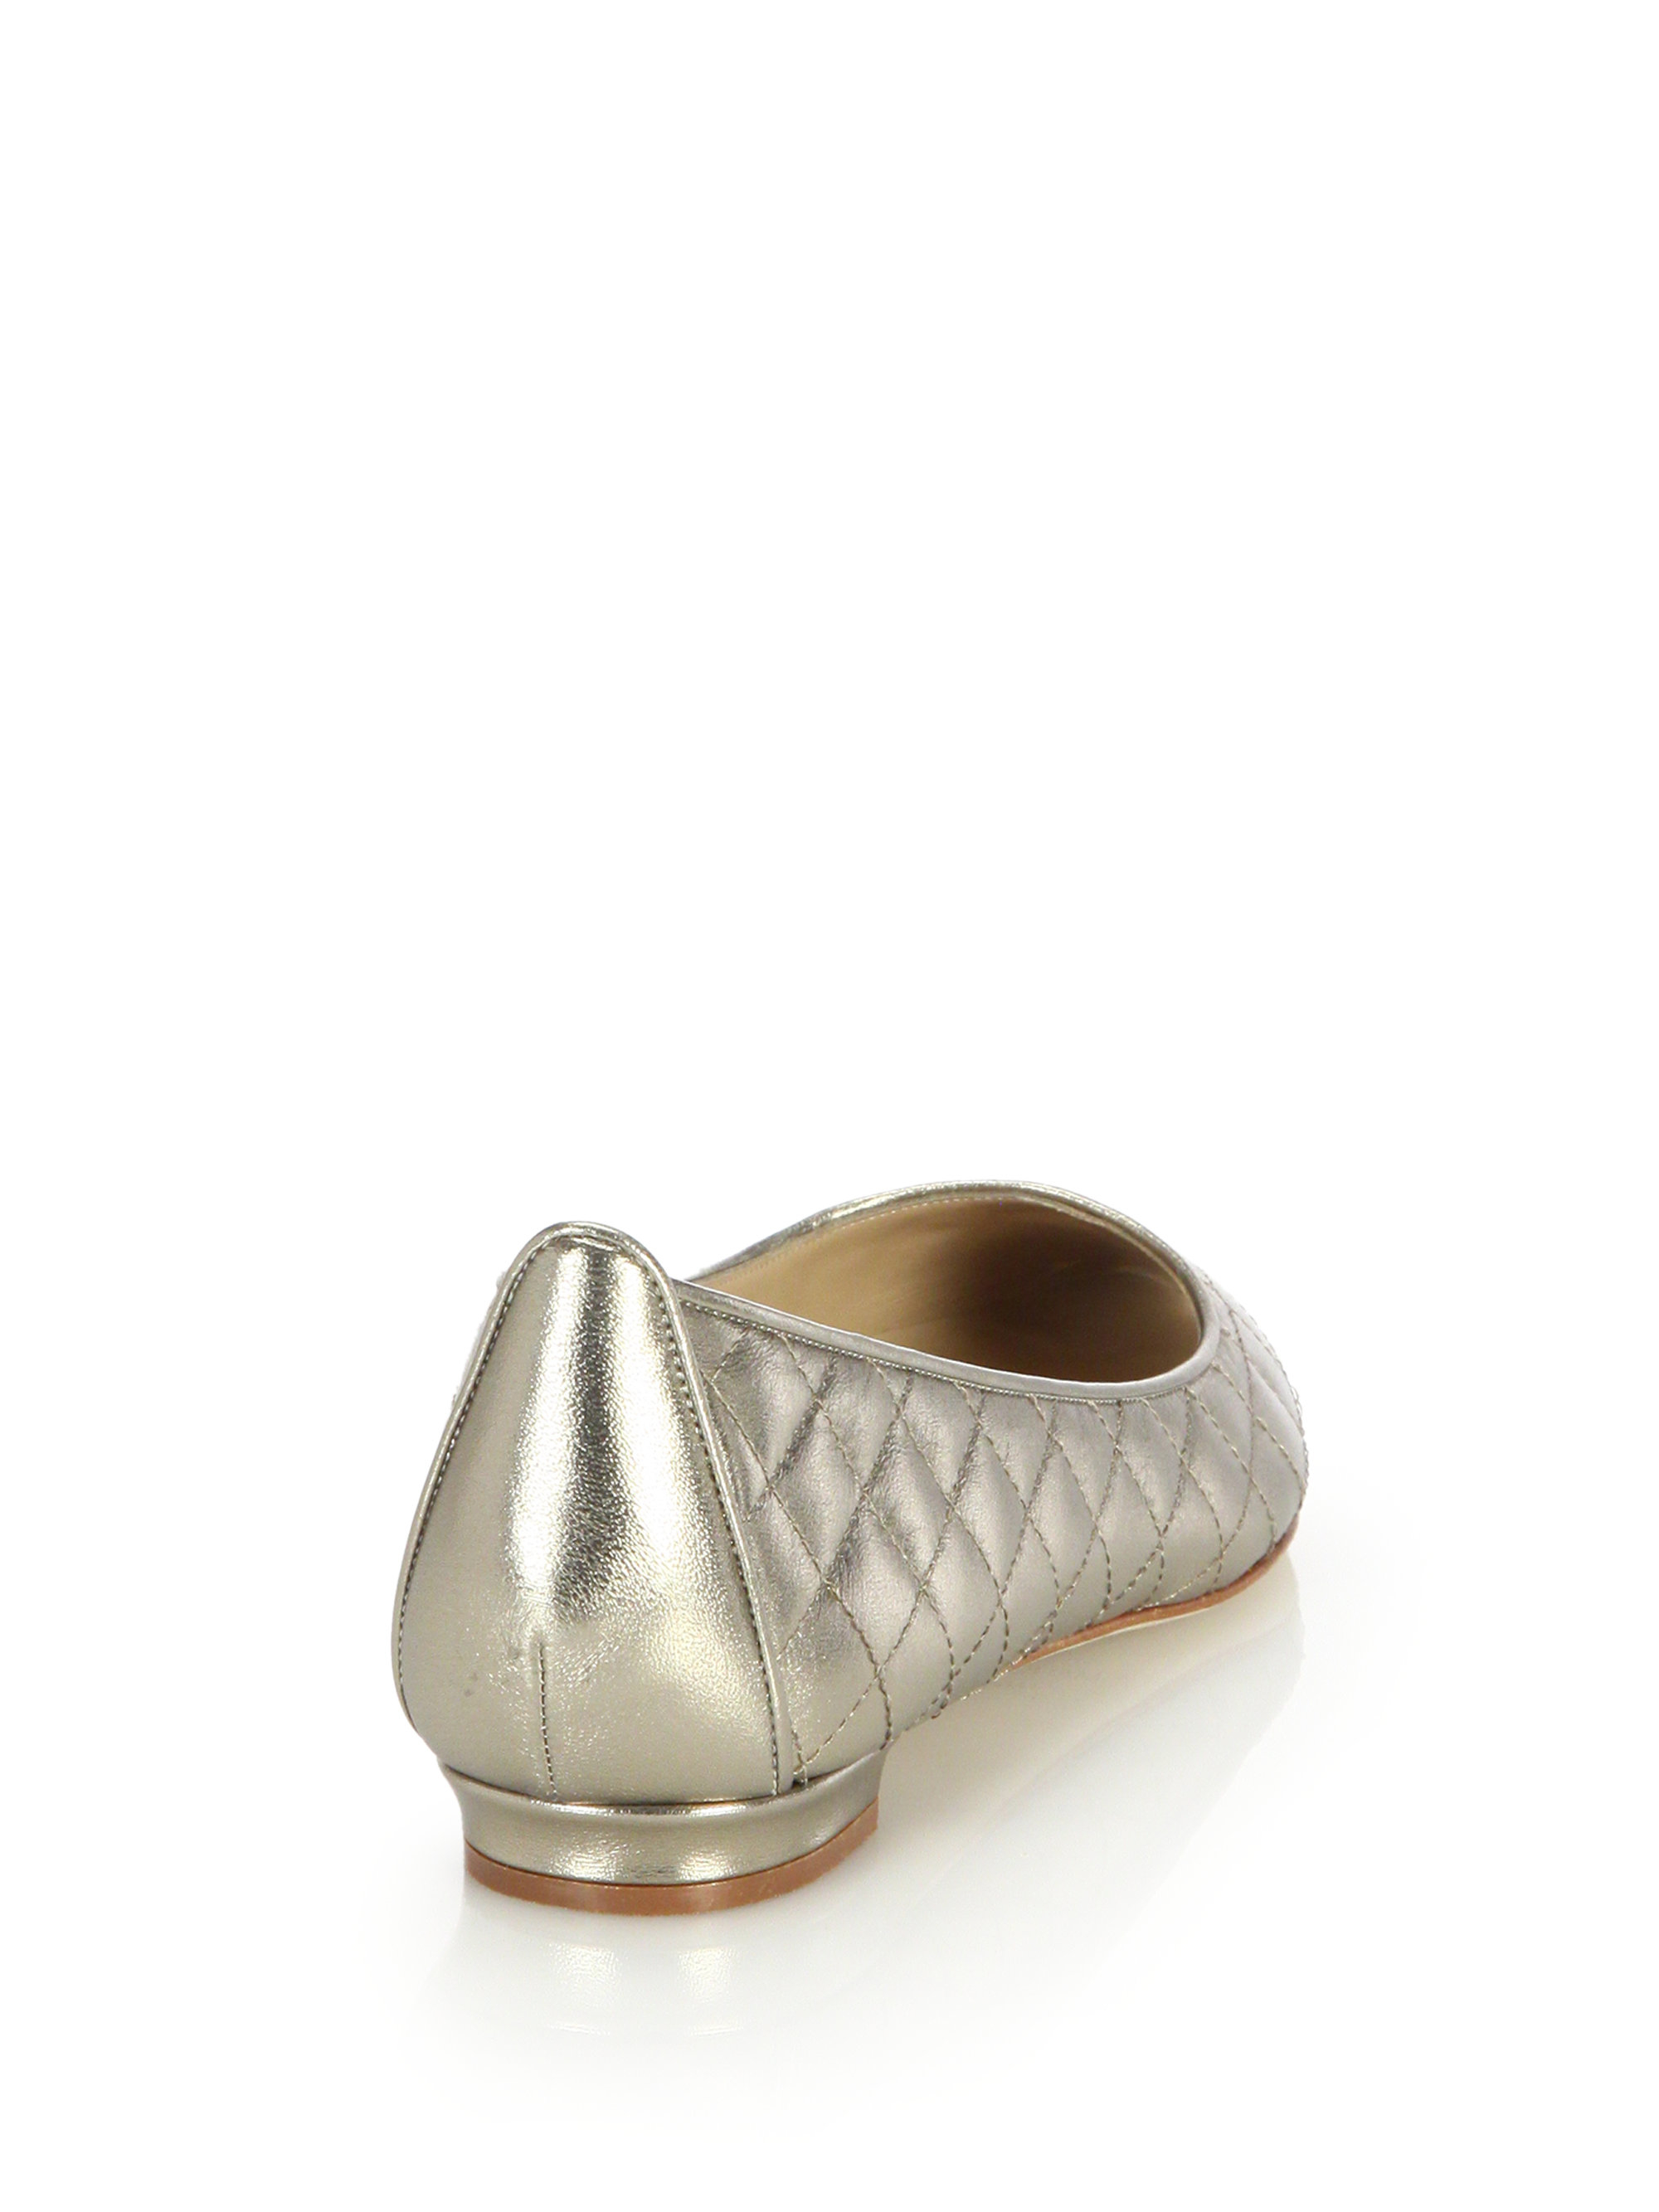 buy cheap from china Manolo Blahnik Metallic Quilted Flats for sale top quality outlet store locations jFBiVHTs